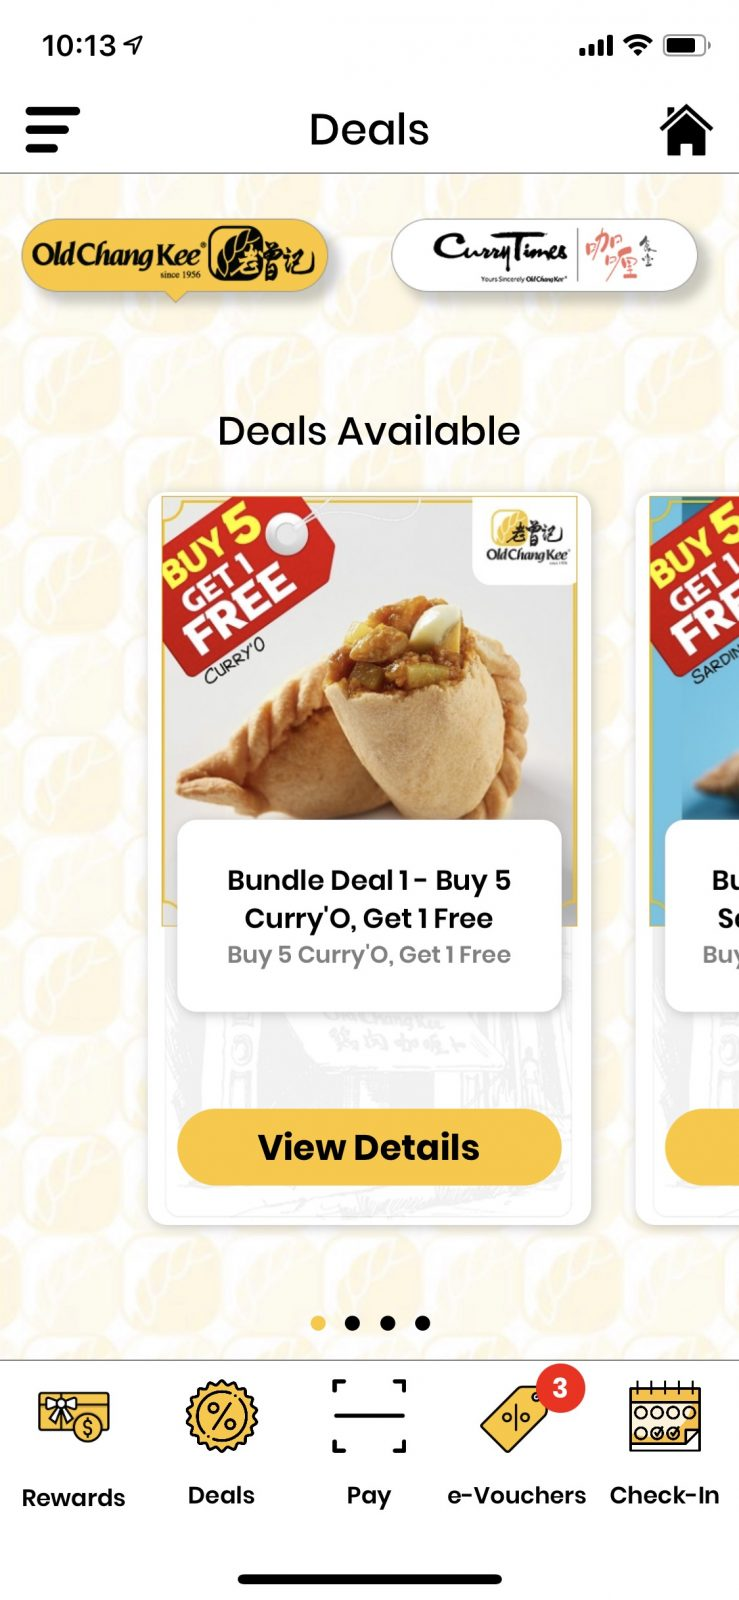 Old Chang Kee Deals